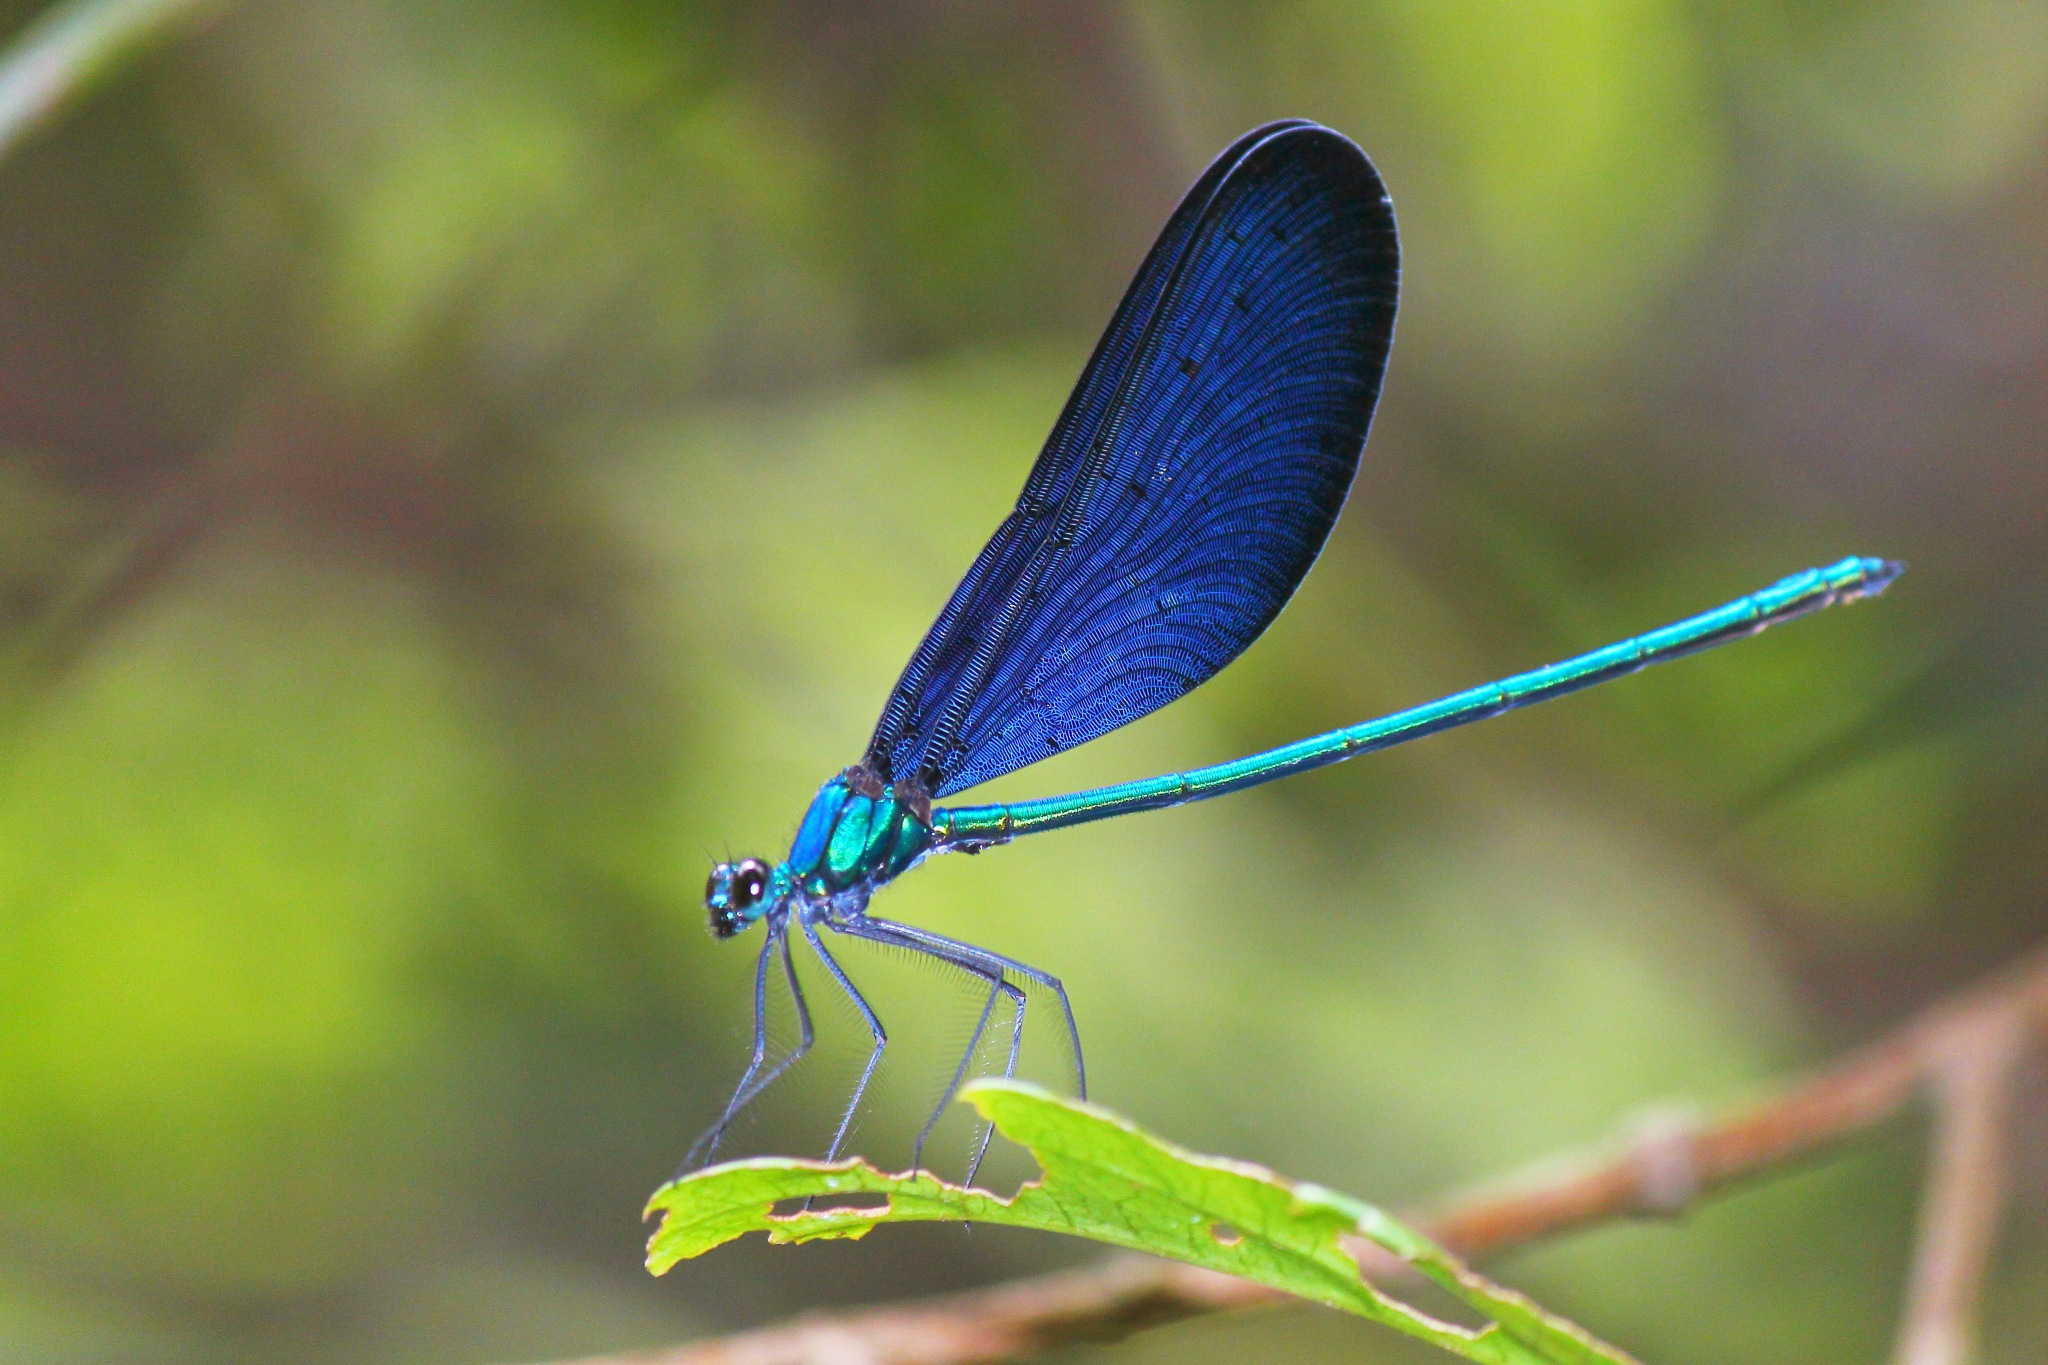 Damselfly by myhsu123